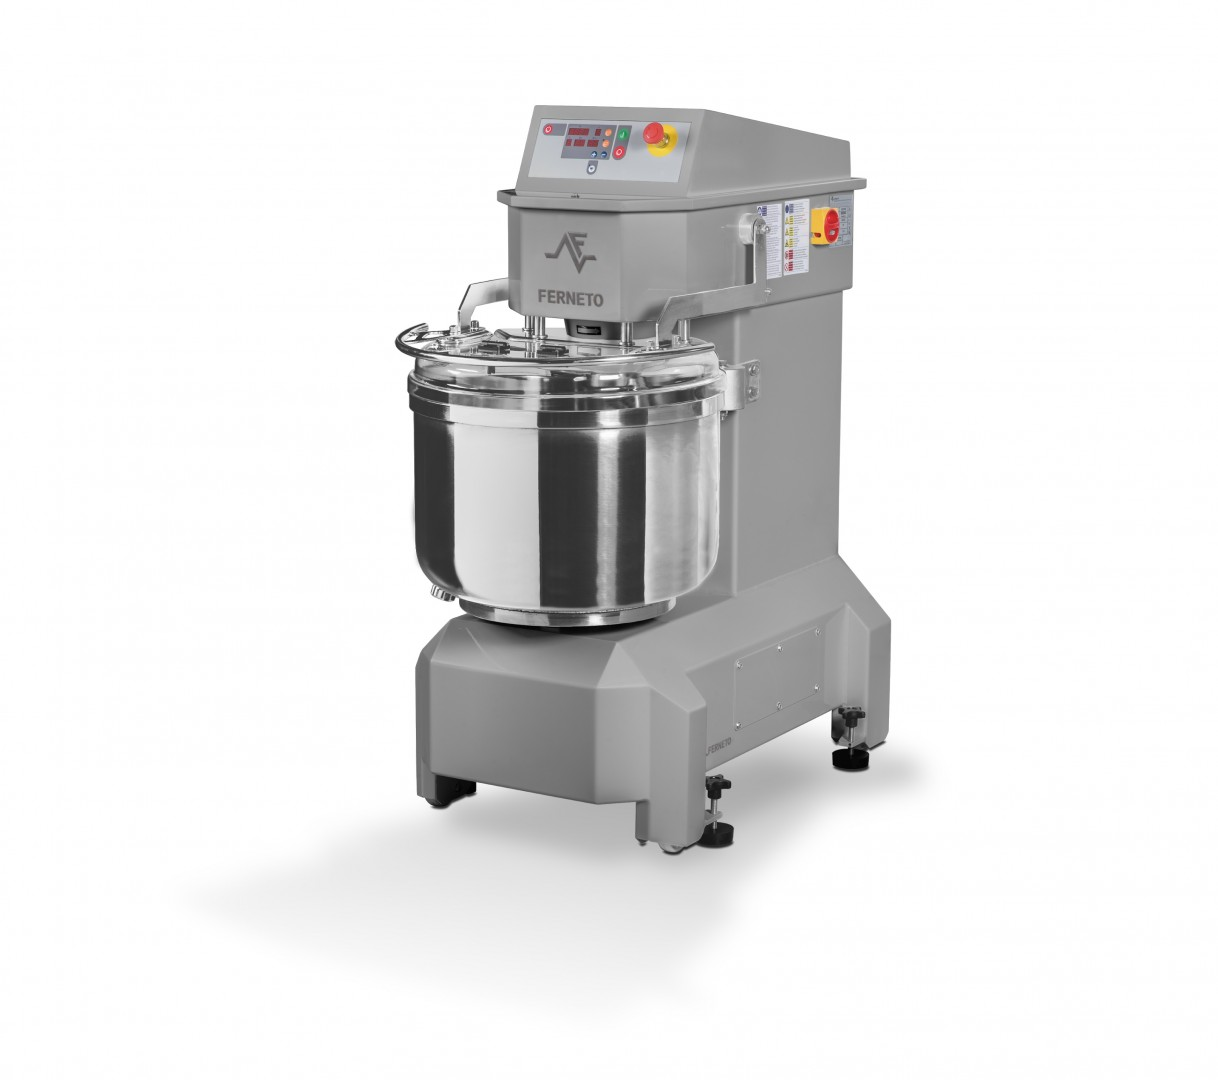 The spiral mixer Ferneto increase the profitability of the bakery